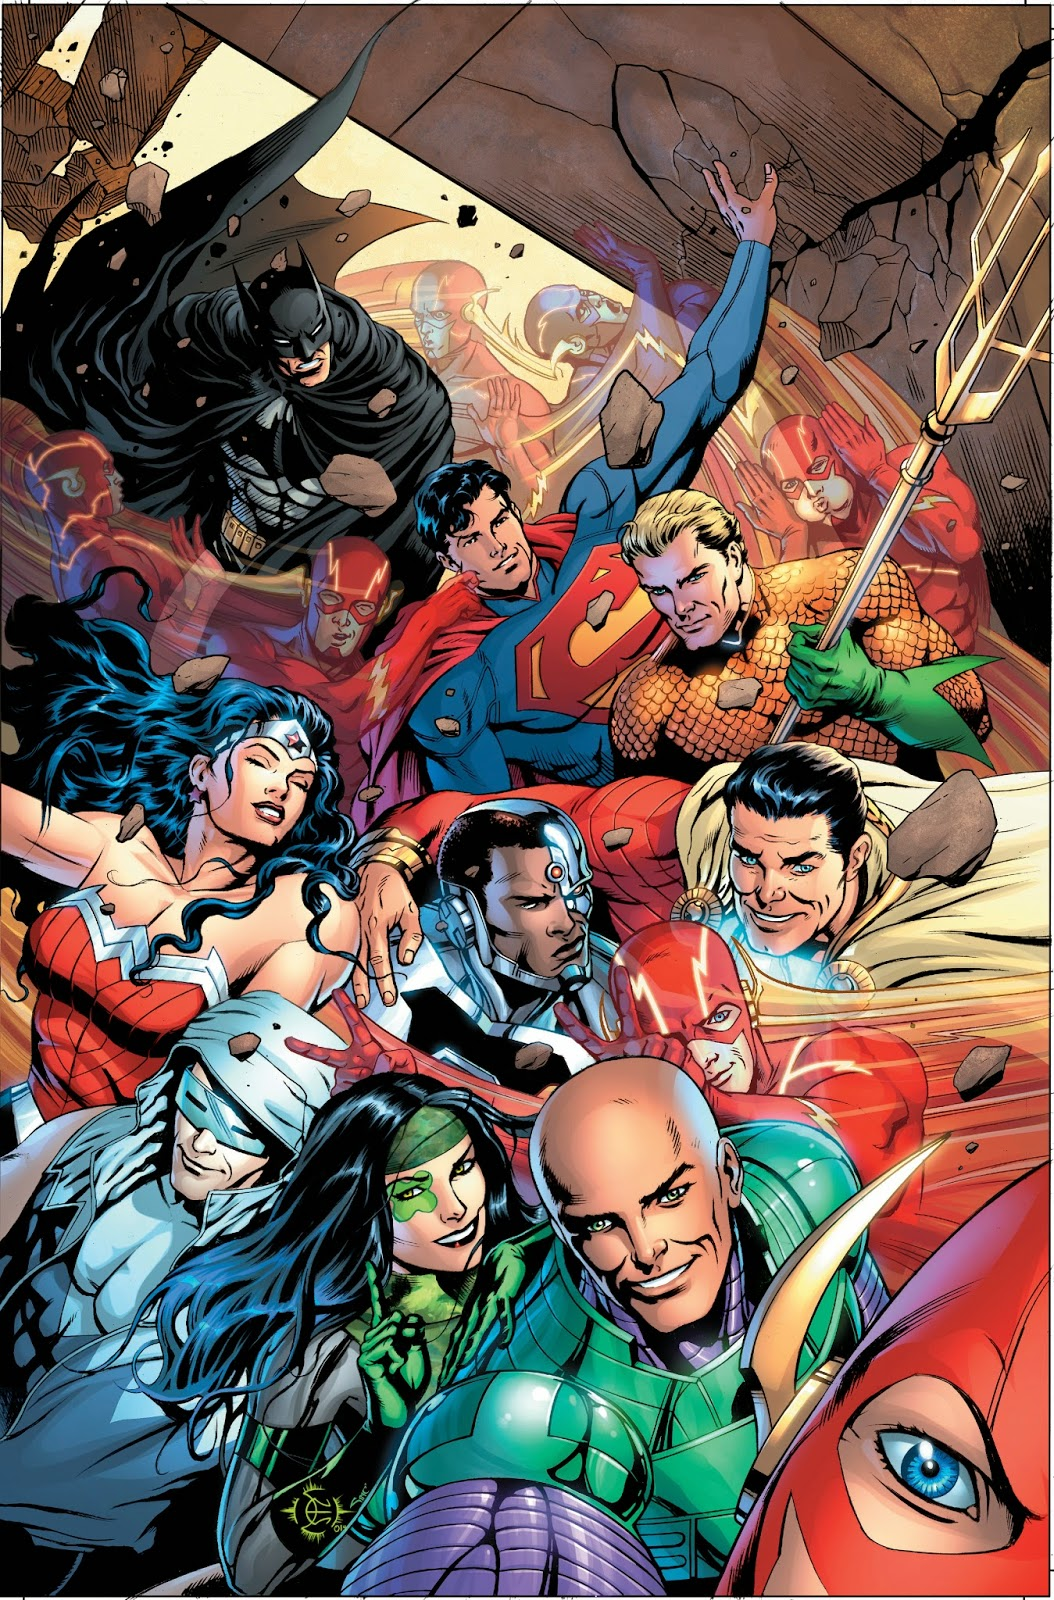 Justice League Vol 2 34 Textless Selfie Variant.jpg